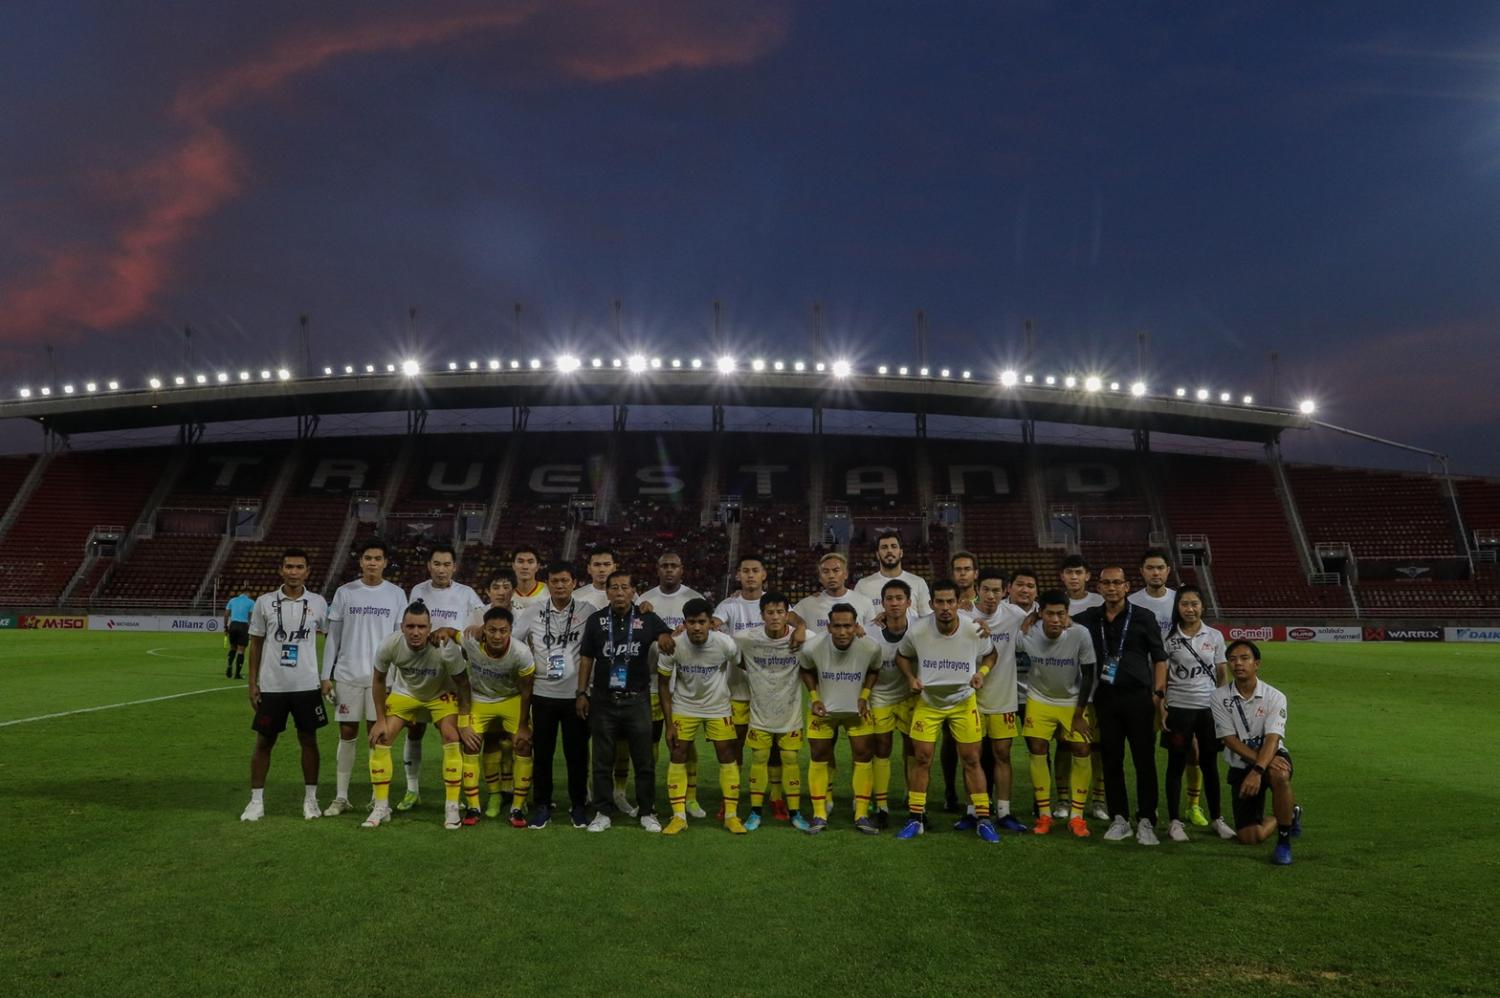 PTT Rayong players and officials pose at True Stadium after the final match of the 2019 season on Saturday.